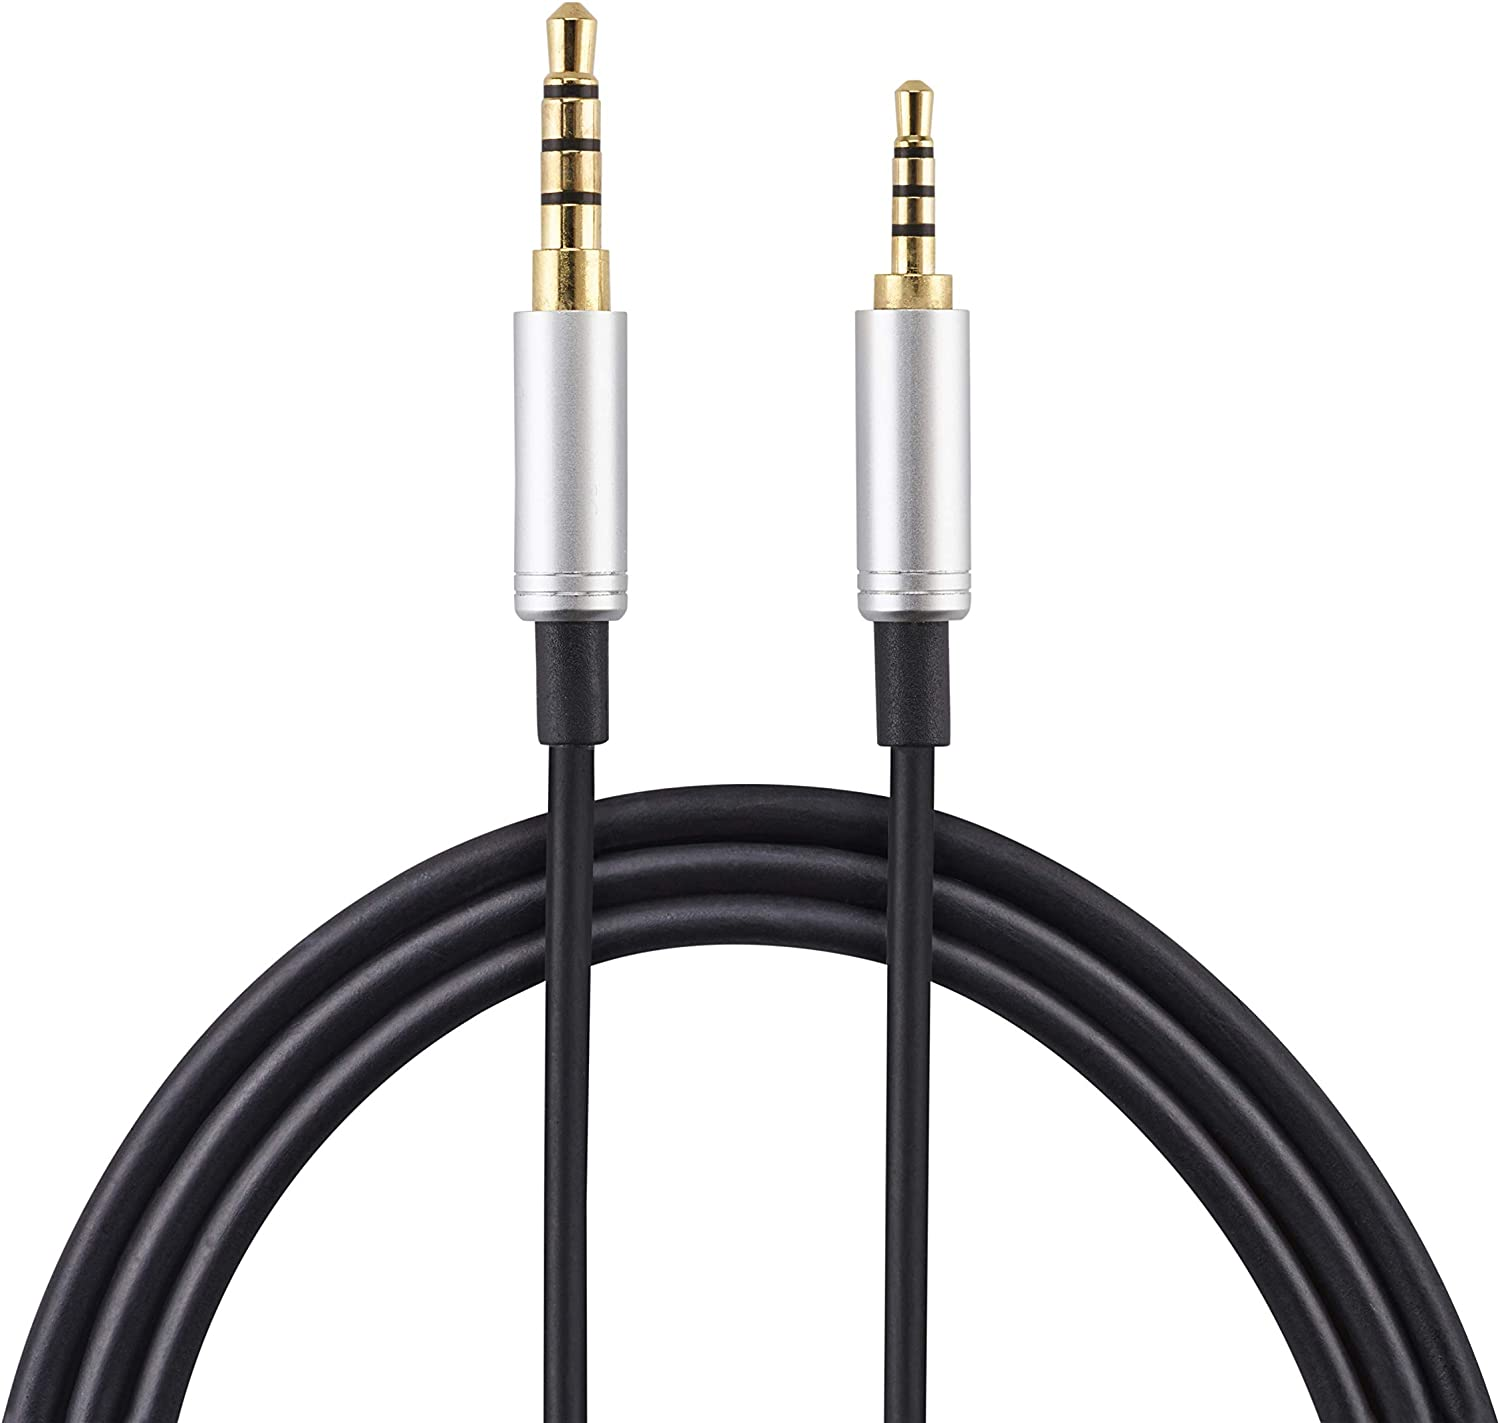 Android-GOLD PLATED Stepped Design AGS Retail Ltd 1.5m Replacement Headphone Audio Aux cable for AKG N700NC N60NC Y45BT Y40 Y55 K490 NC K545 Compatible with all iOS